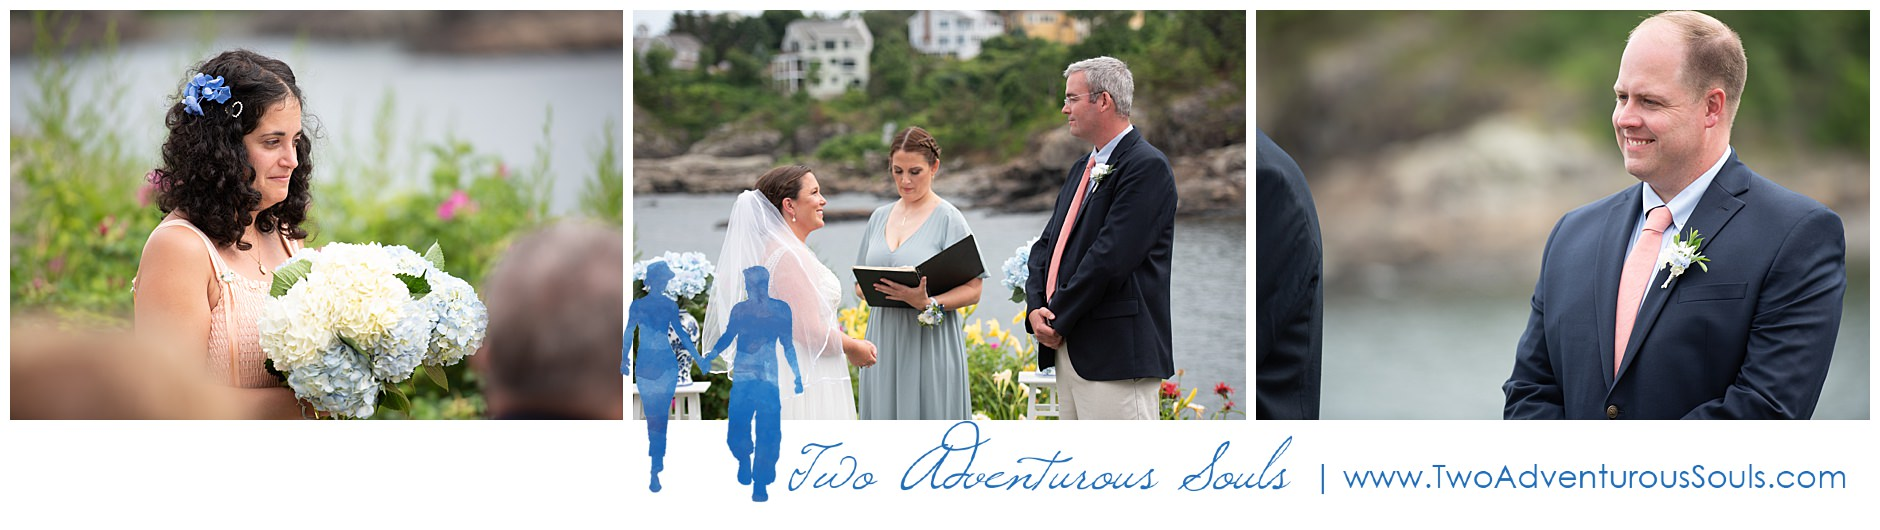 Maine Wedding Photographers, Ogunquit Wedding Photographers, Maine Elopement Photographers, Two Adventurous Souls-080619_0013.jpg